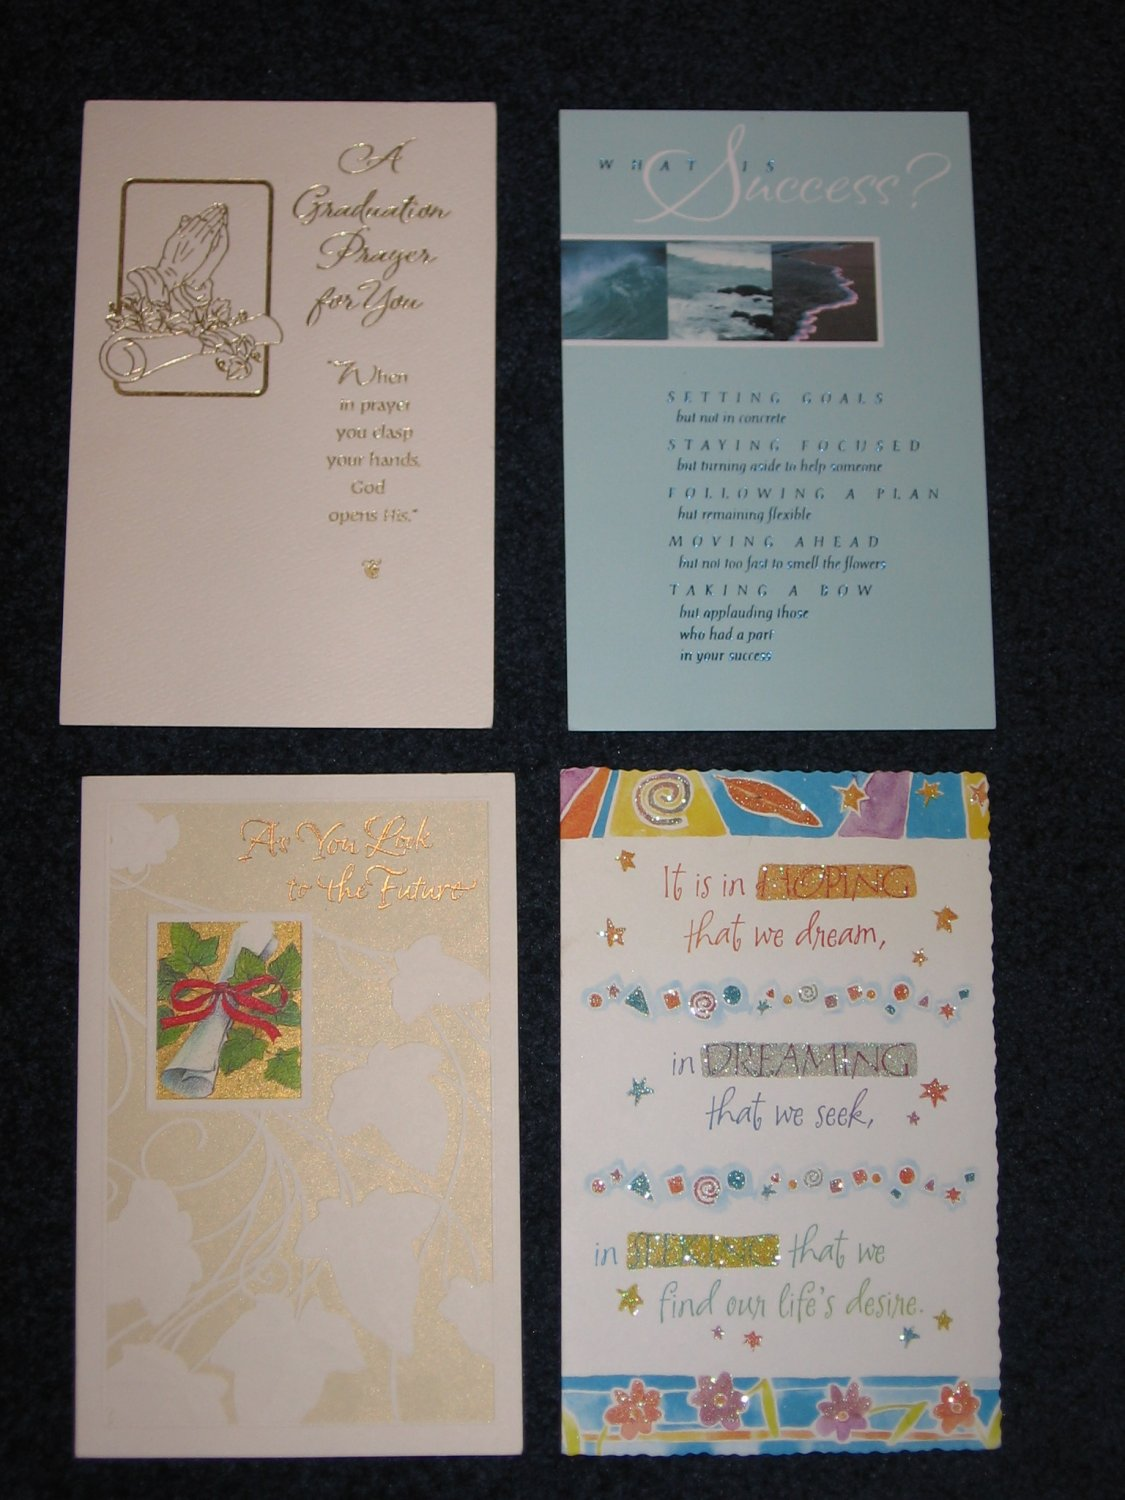 Graduation Cards by American Greetings Lot of 4 Four Different Card Designs with Envelopes